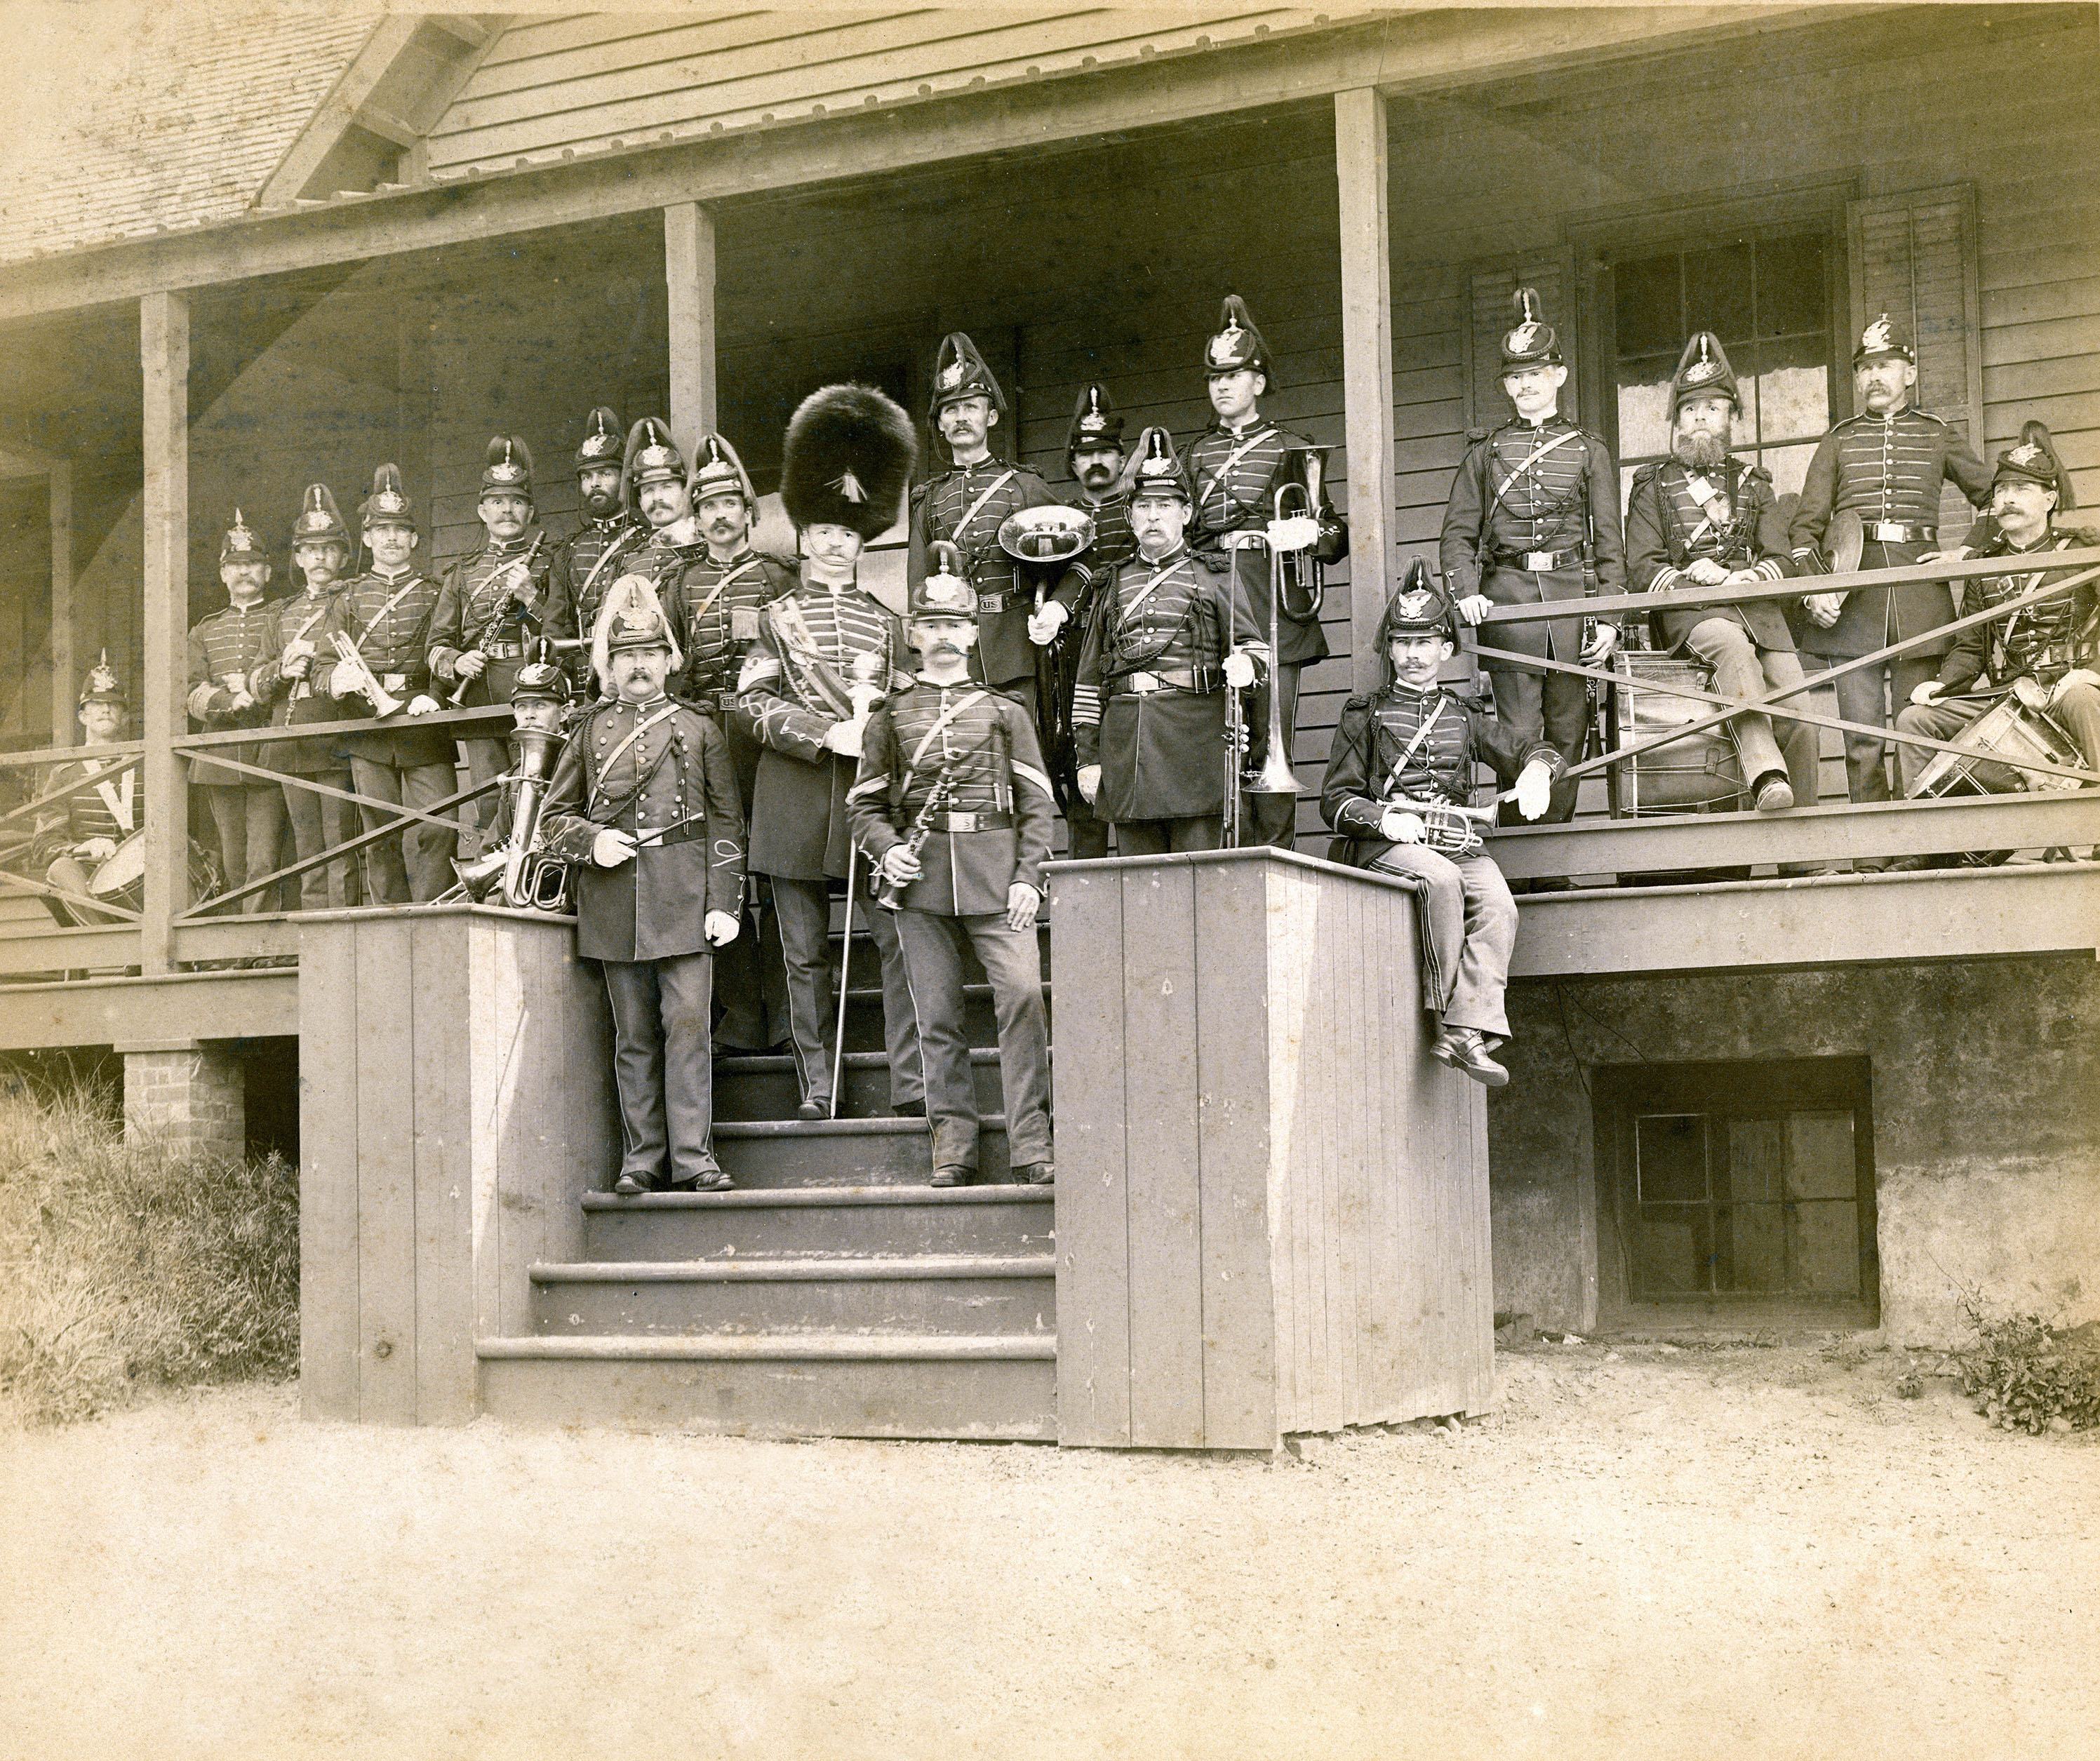 Band on steps of photo lab building